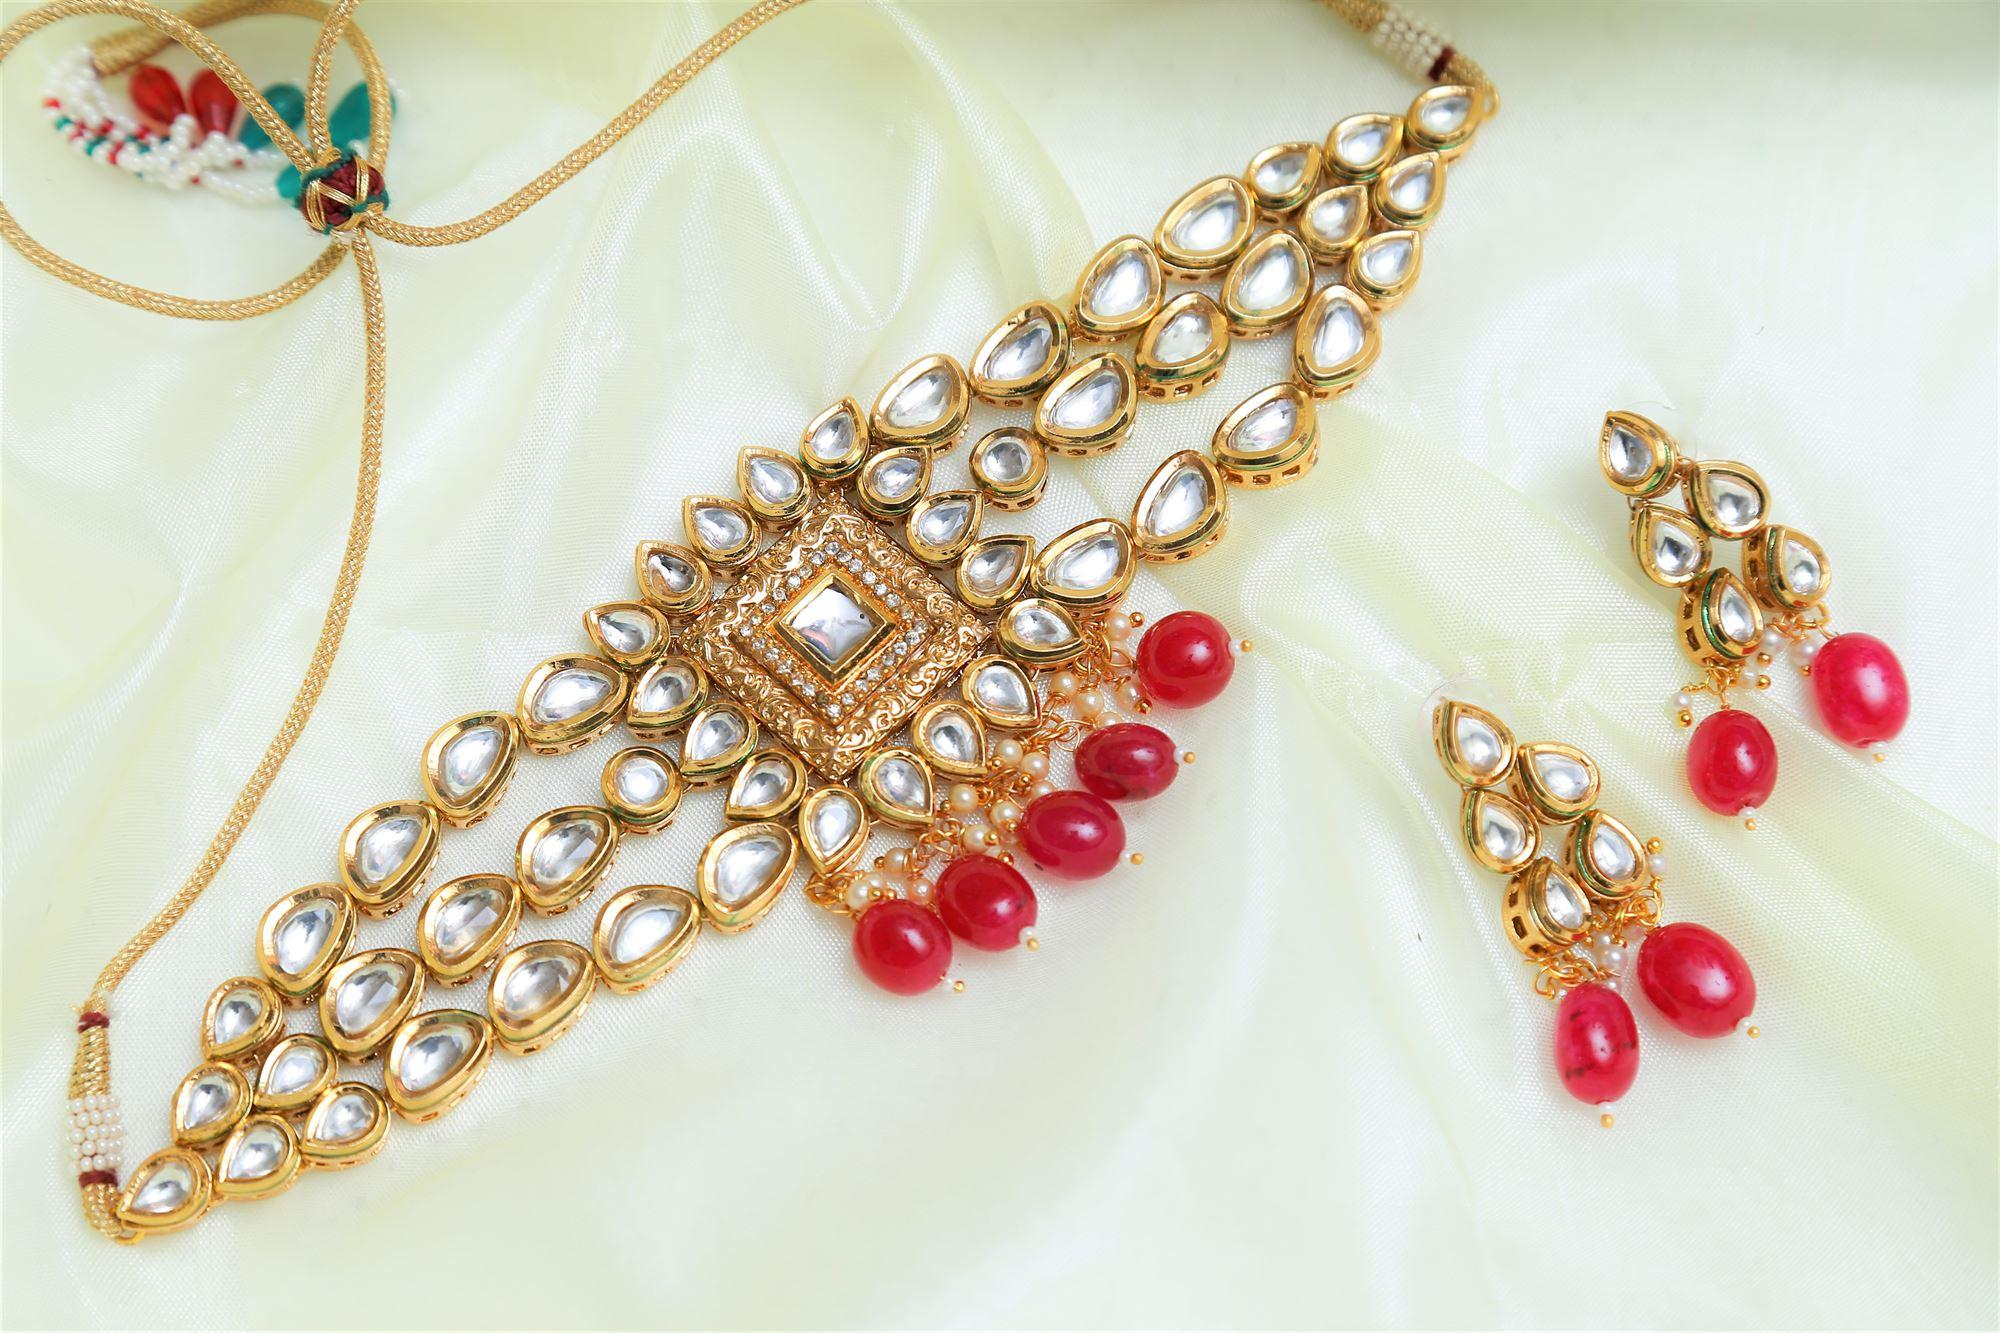 15c92a40a9 Indian Kundan Chokkar Set in Red Stones And Micro AAA + Tiny Cubic Zircons  Mounted On